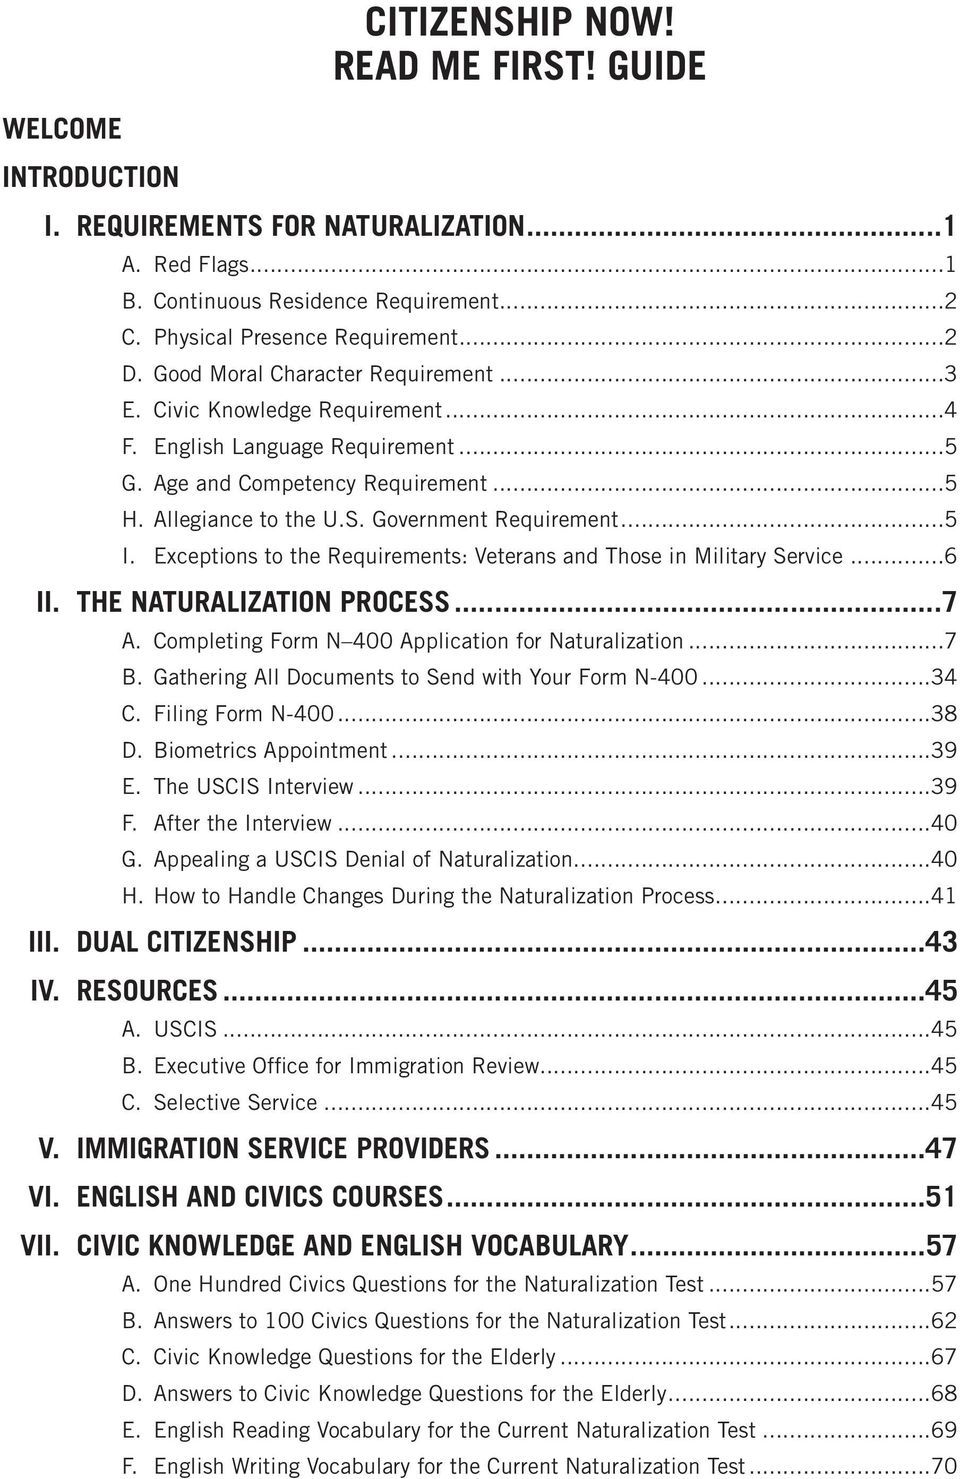 Citizenship now citizenship and naturalization guide pdf exceptions to the requirements veterans and those in military service6 ii falaconquin